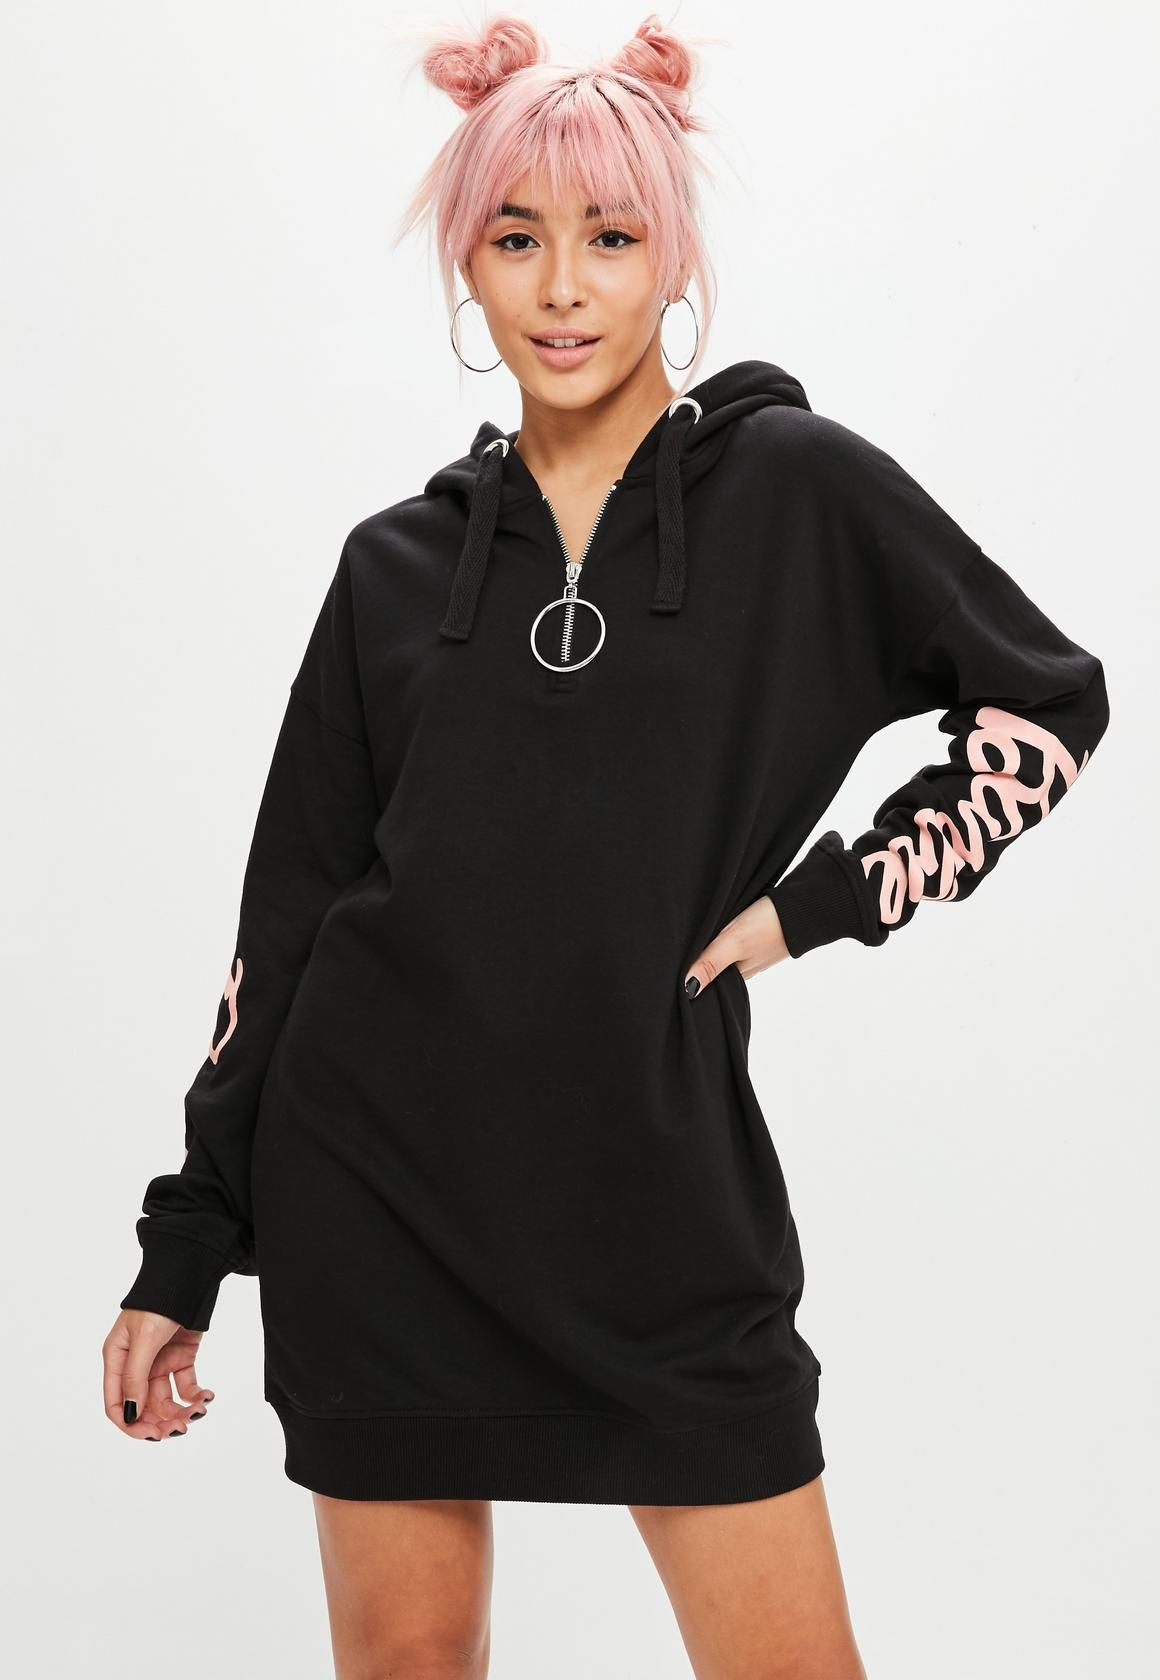 711fe50823 Missguided - Barbie x Missguided Black Hooded Sweat Dress